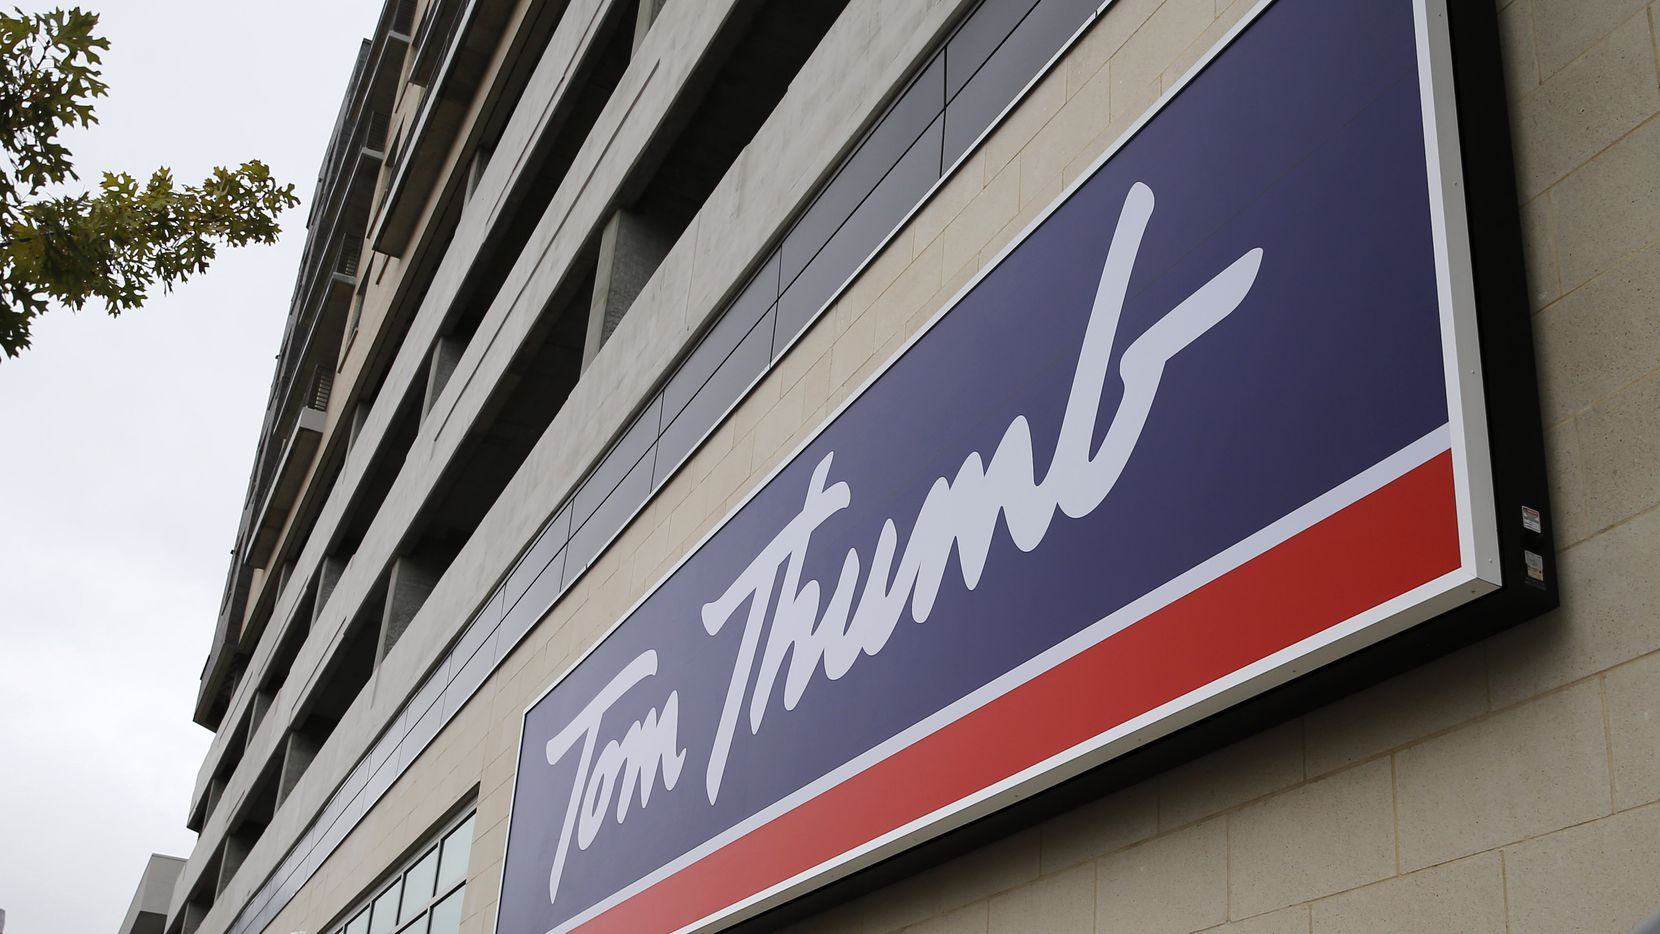 This 56,000-square-foot Tom Thumb grocery store, just east of downtown Dallas on Live Oak Street, is on the street level of the Gabriella, a 378-unit apartment building.